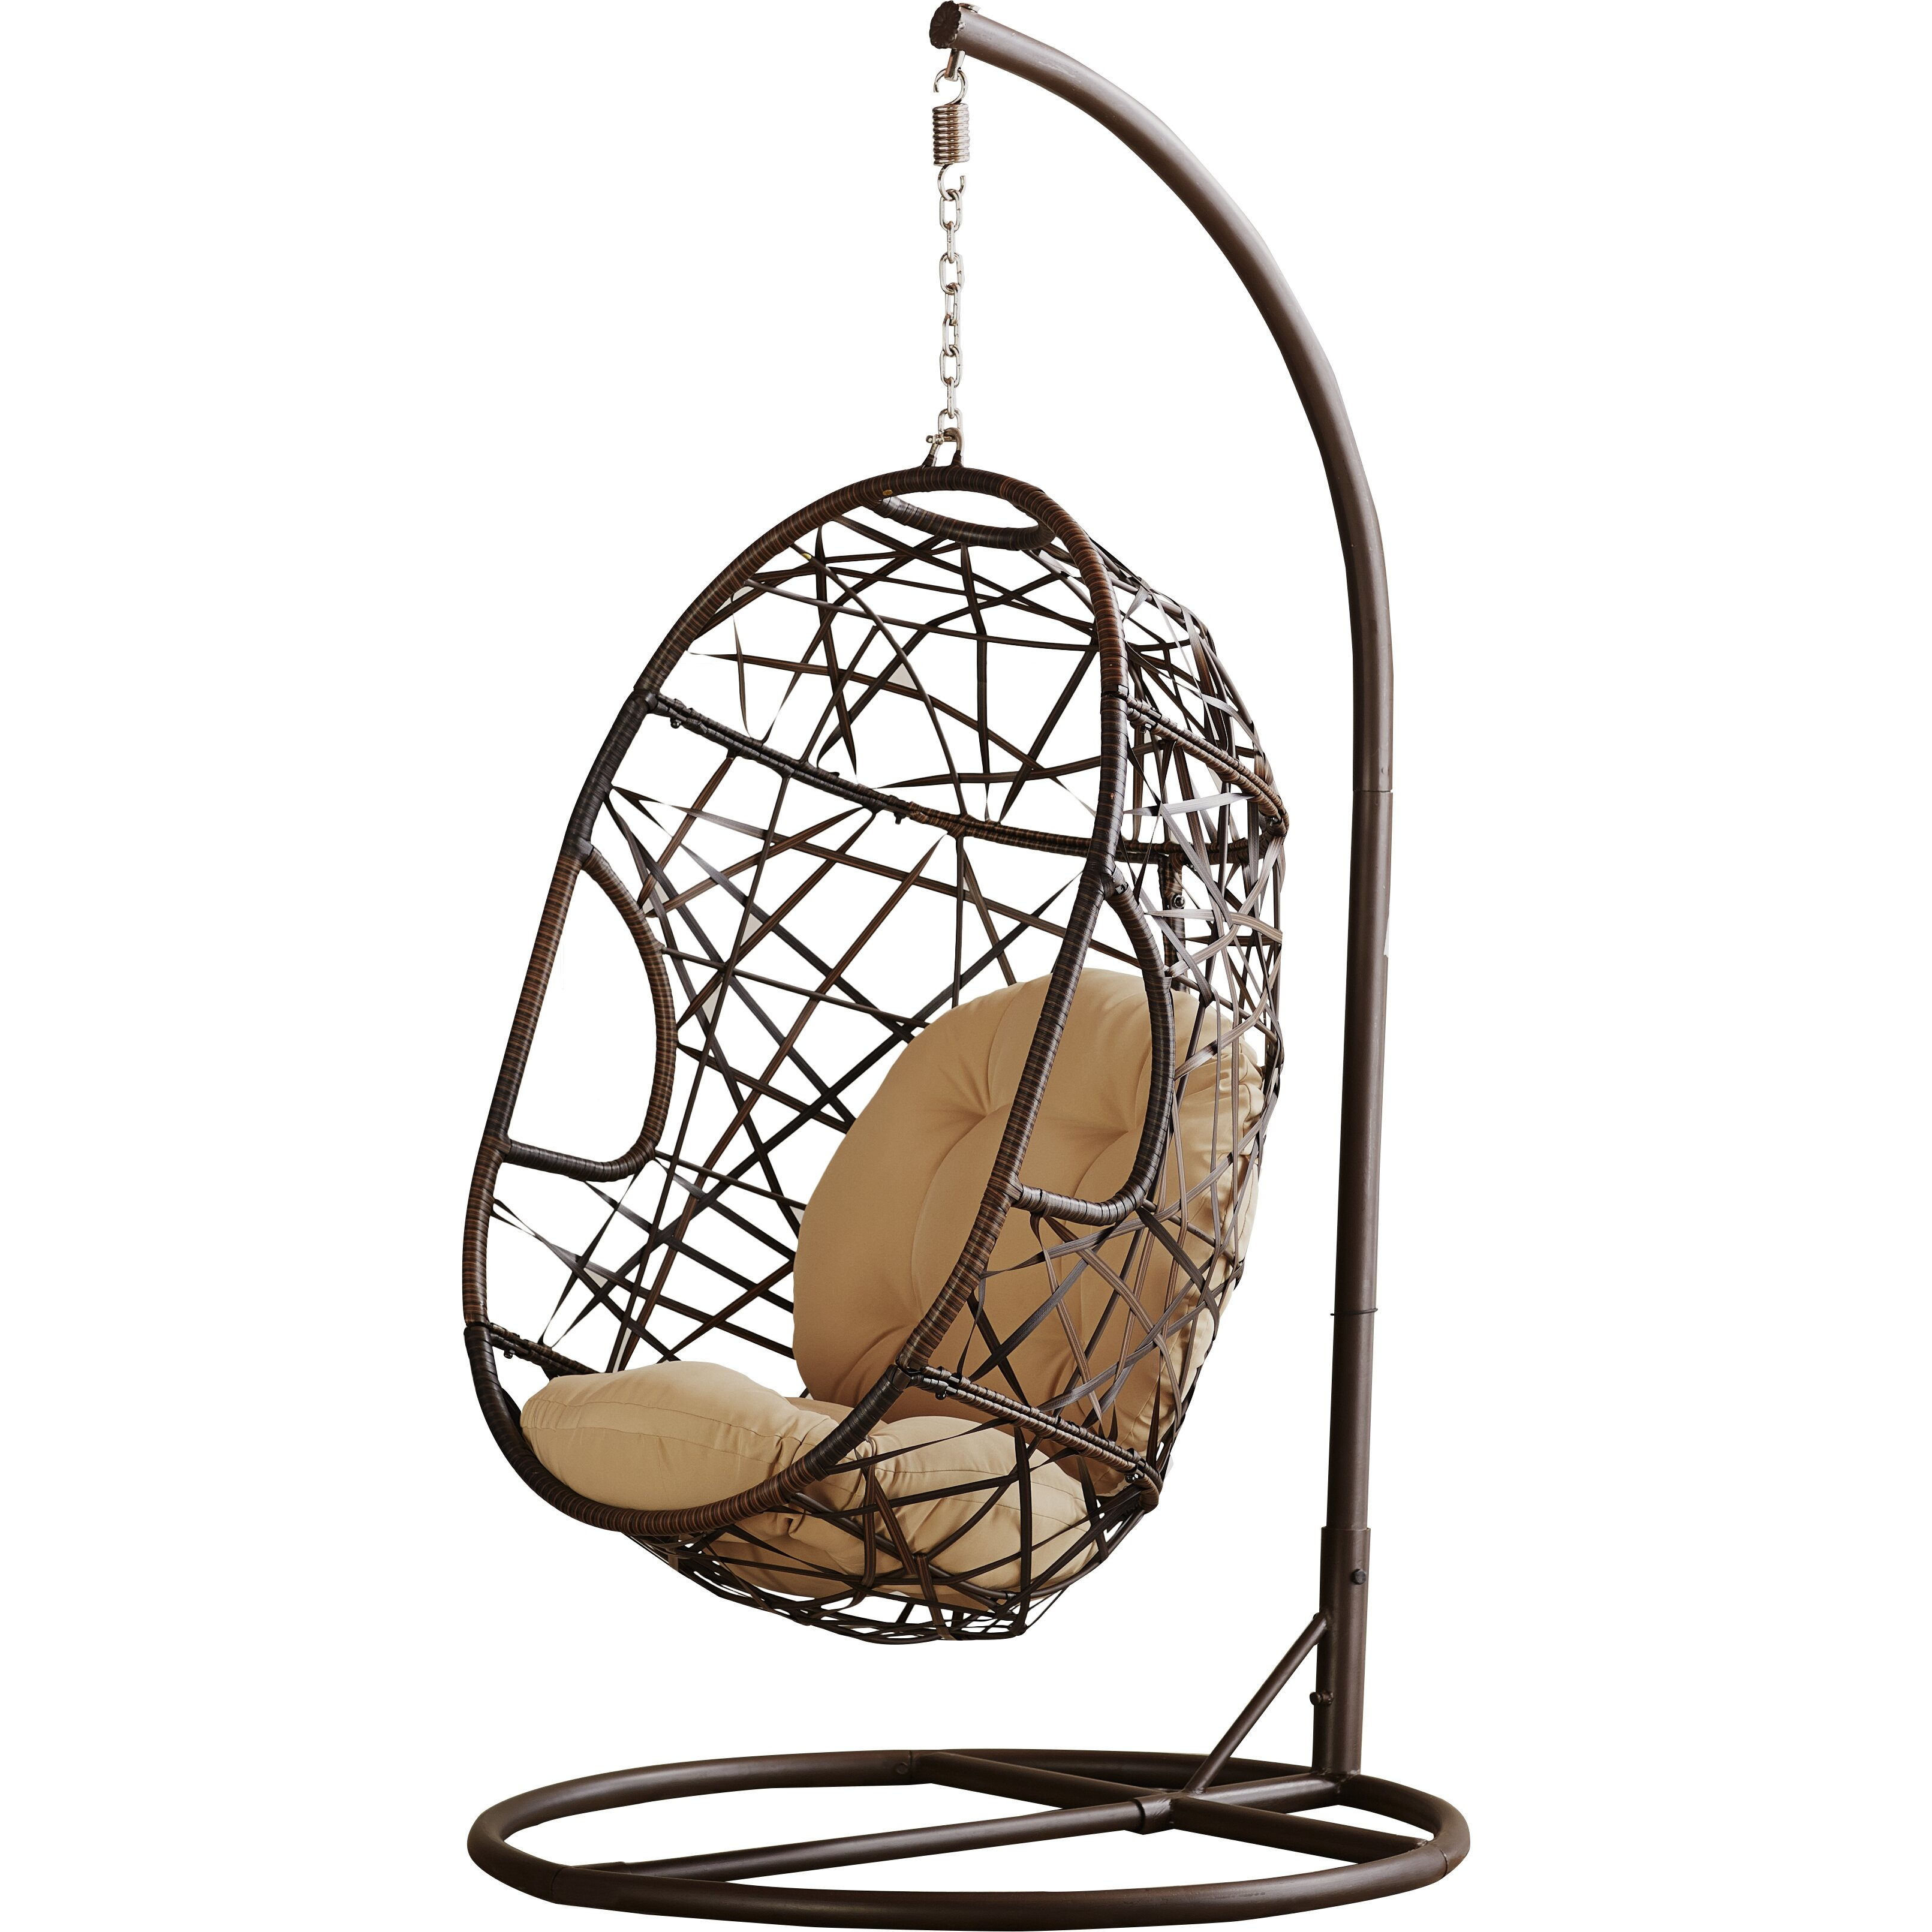 Duncombe Egg Shaped Outdoor Swing Chair With Stand